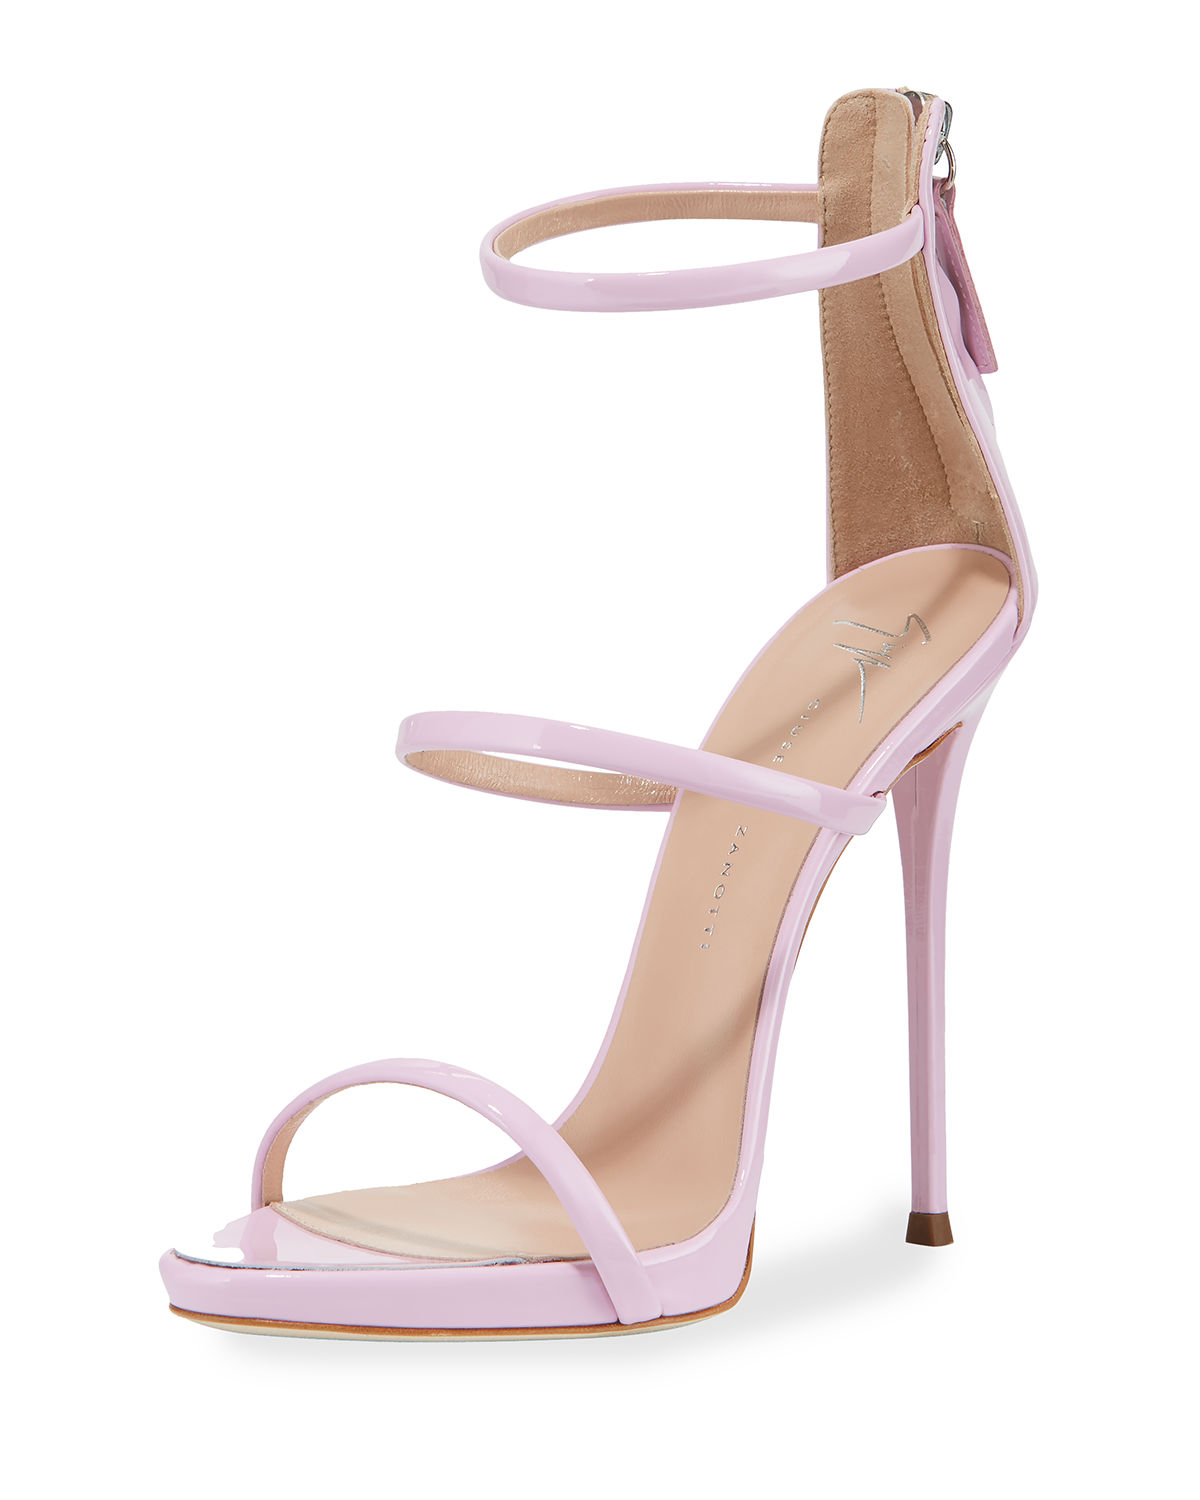 9f90c50032a Giuseppe Zanotti Three-Strap 120mm Sandals